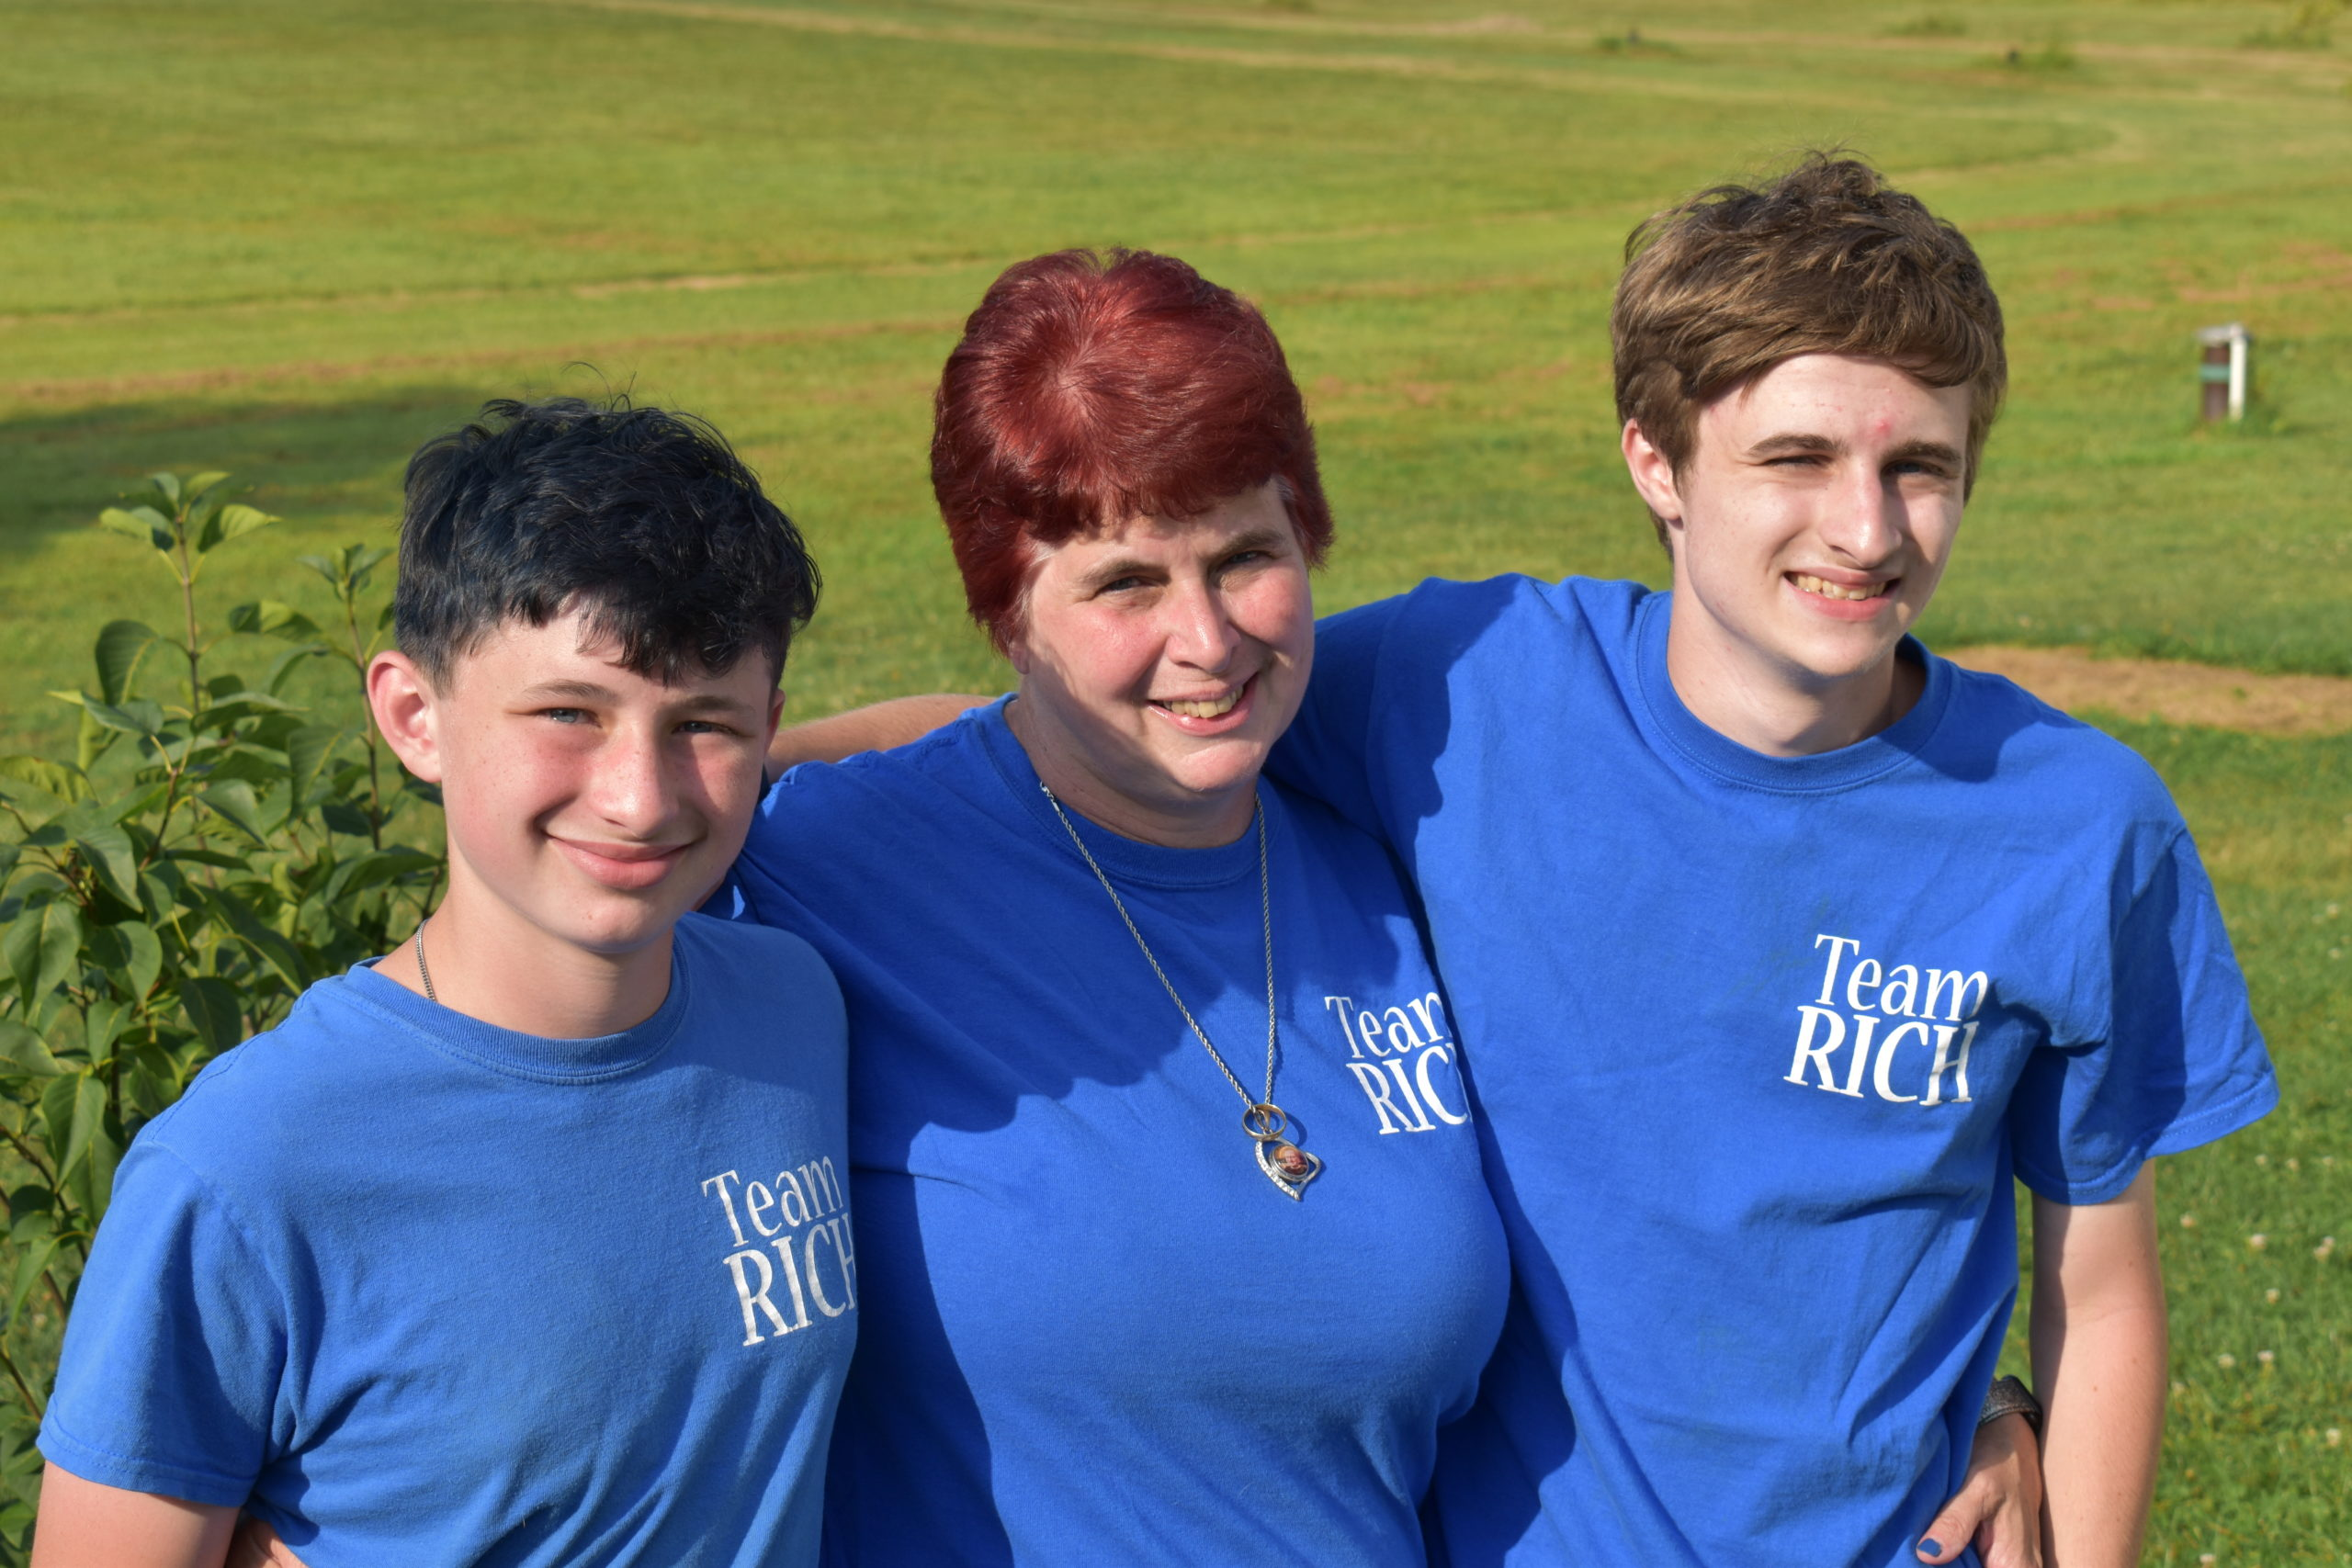 The members of Team Rich are, from left, Ryan, Jeanne and Ricky Atkinson. They have formed nonprofit corporation, Team Rich, in honor of husband and father Rich Atkinson.